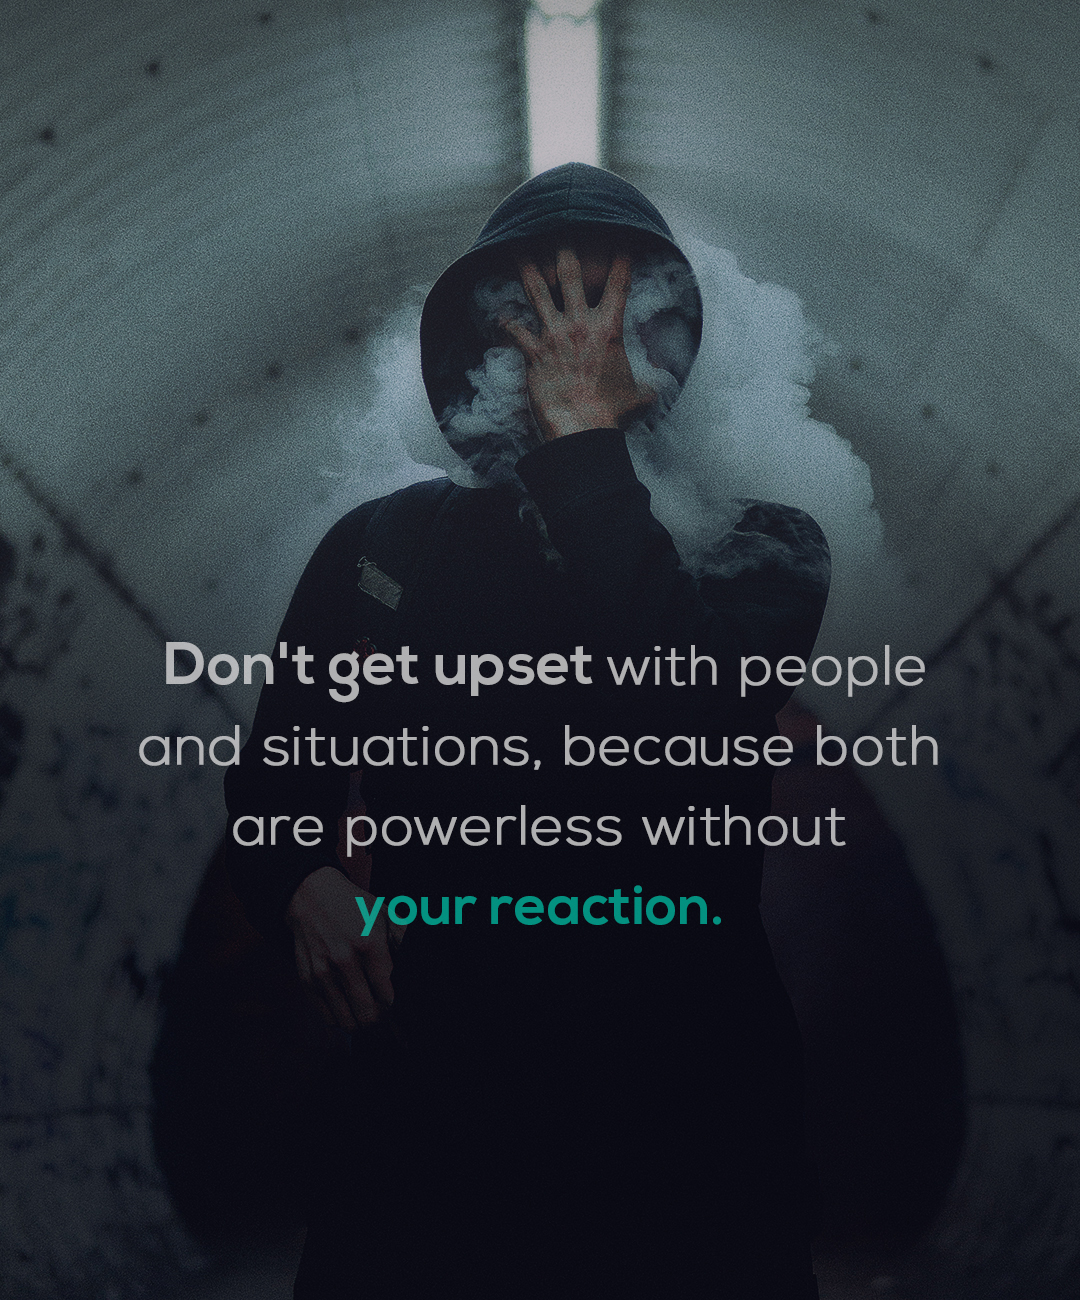 """Don't get upset with people and situations, because both are powerless without your reaction."" -Anonymous [1800×1300]"